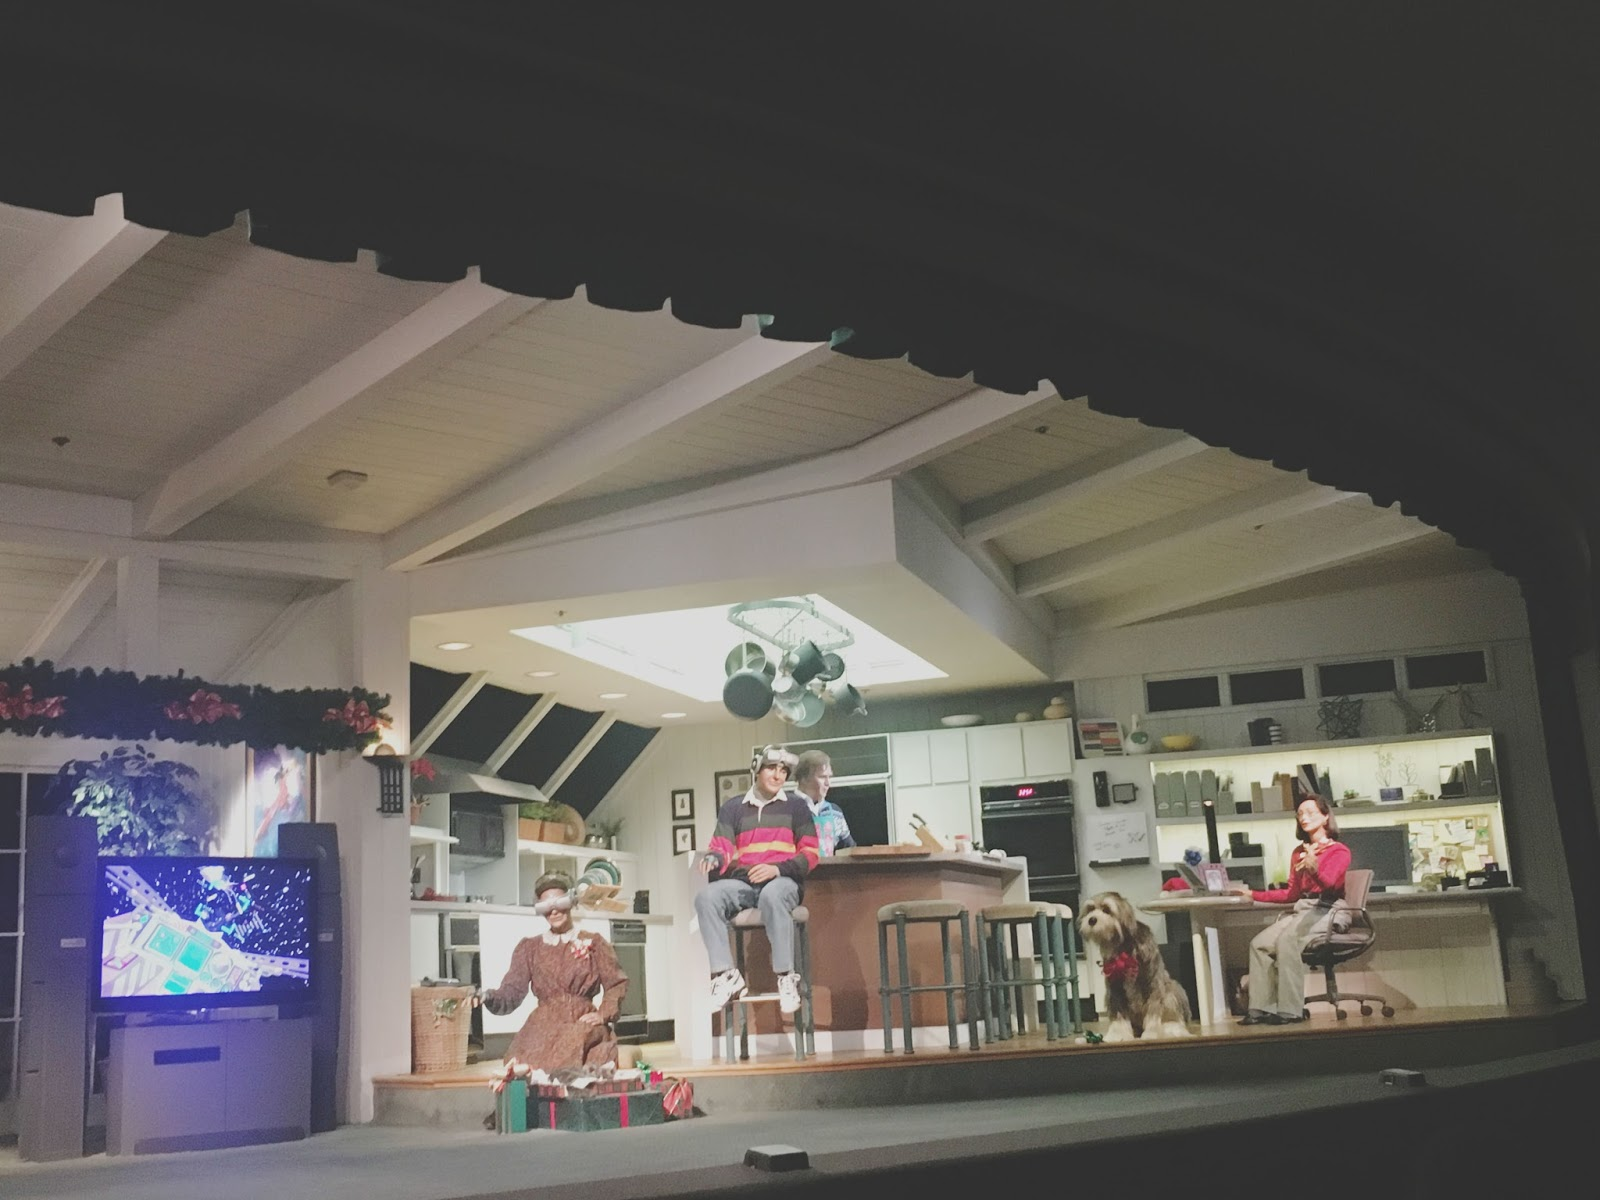 Carousel of Progress at Magic Kingdom in Disney World, Florida